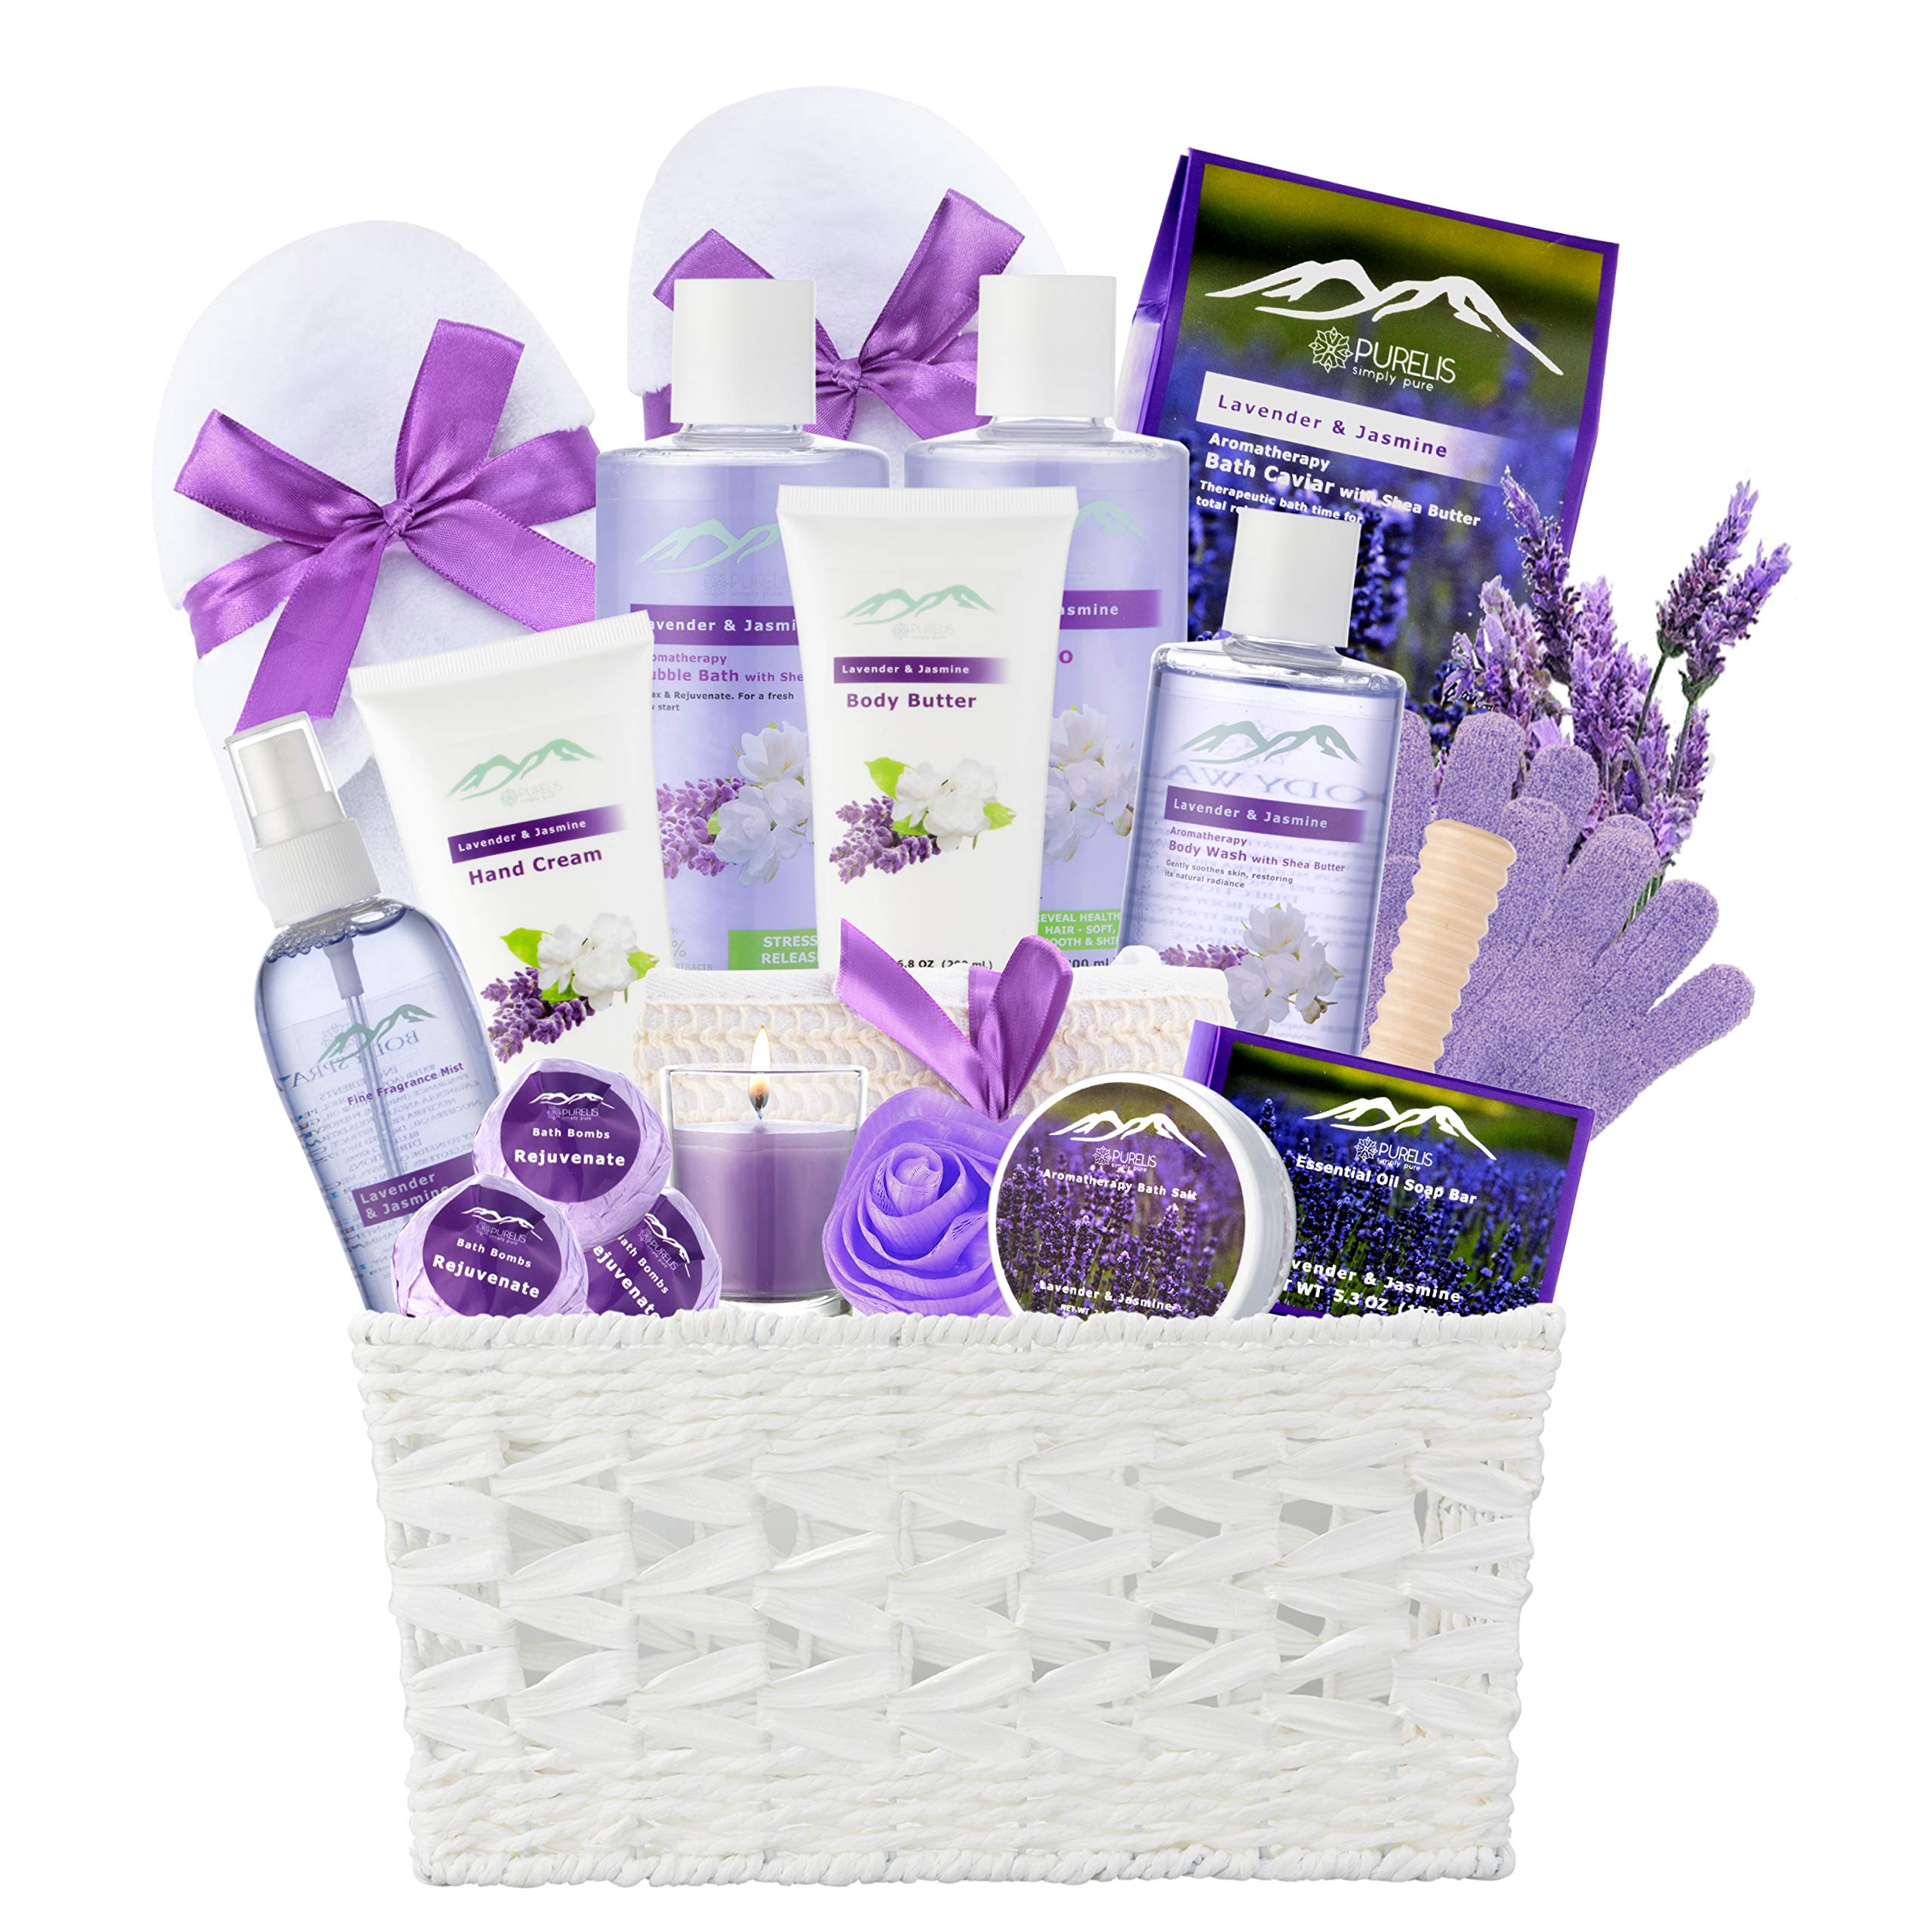 Jasmine Lavender Bath Gift Basket for Women! XL Spa Gift Basket for Relaxing at Home Spa Kit. Purelis Aromatherapy Bath Sets for Women are the #1 Choice in Spa Baskets and Womens Gift Baskets by Purelis